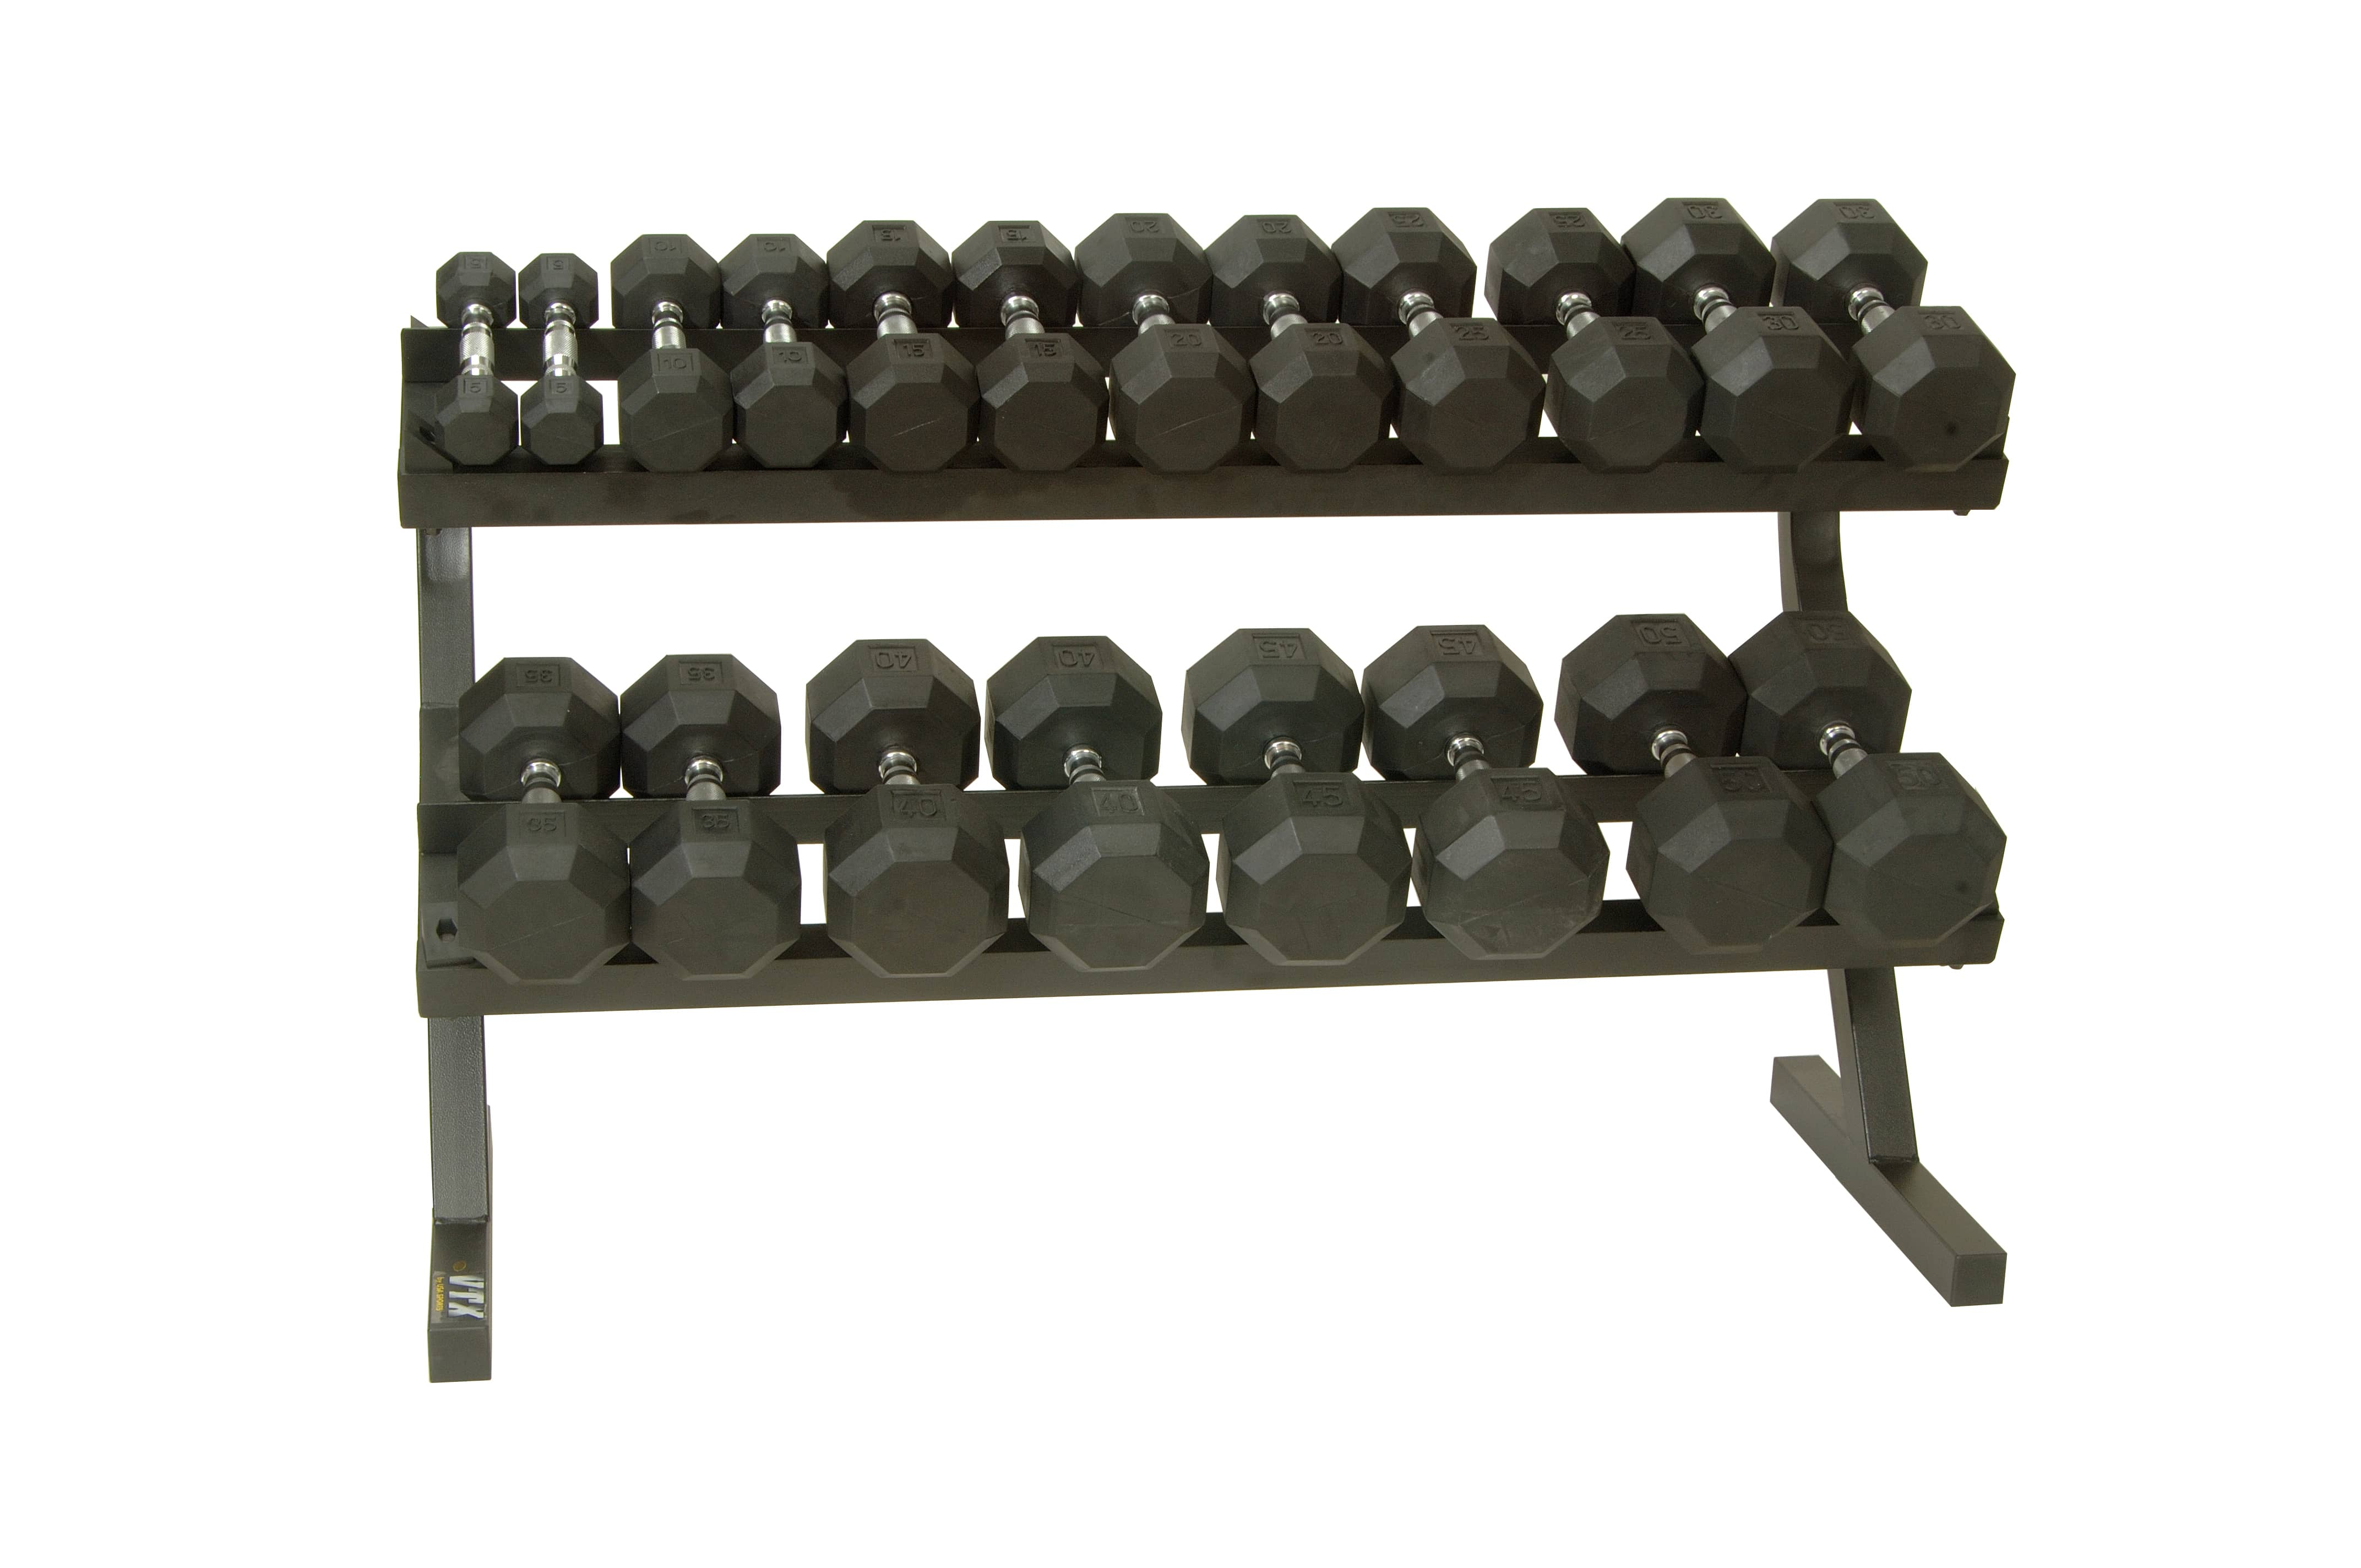 5-50 lb. Pairs, Dumbbell Weight Set with Rack, Rubber Flat 8-Sided Head w/ Rail Rack (Heavy Duty Construction) by VTX